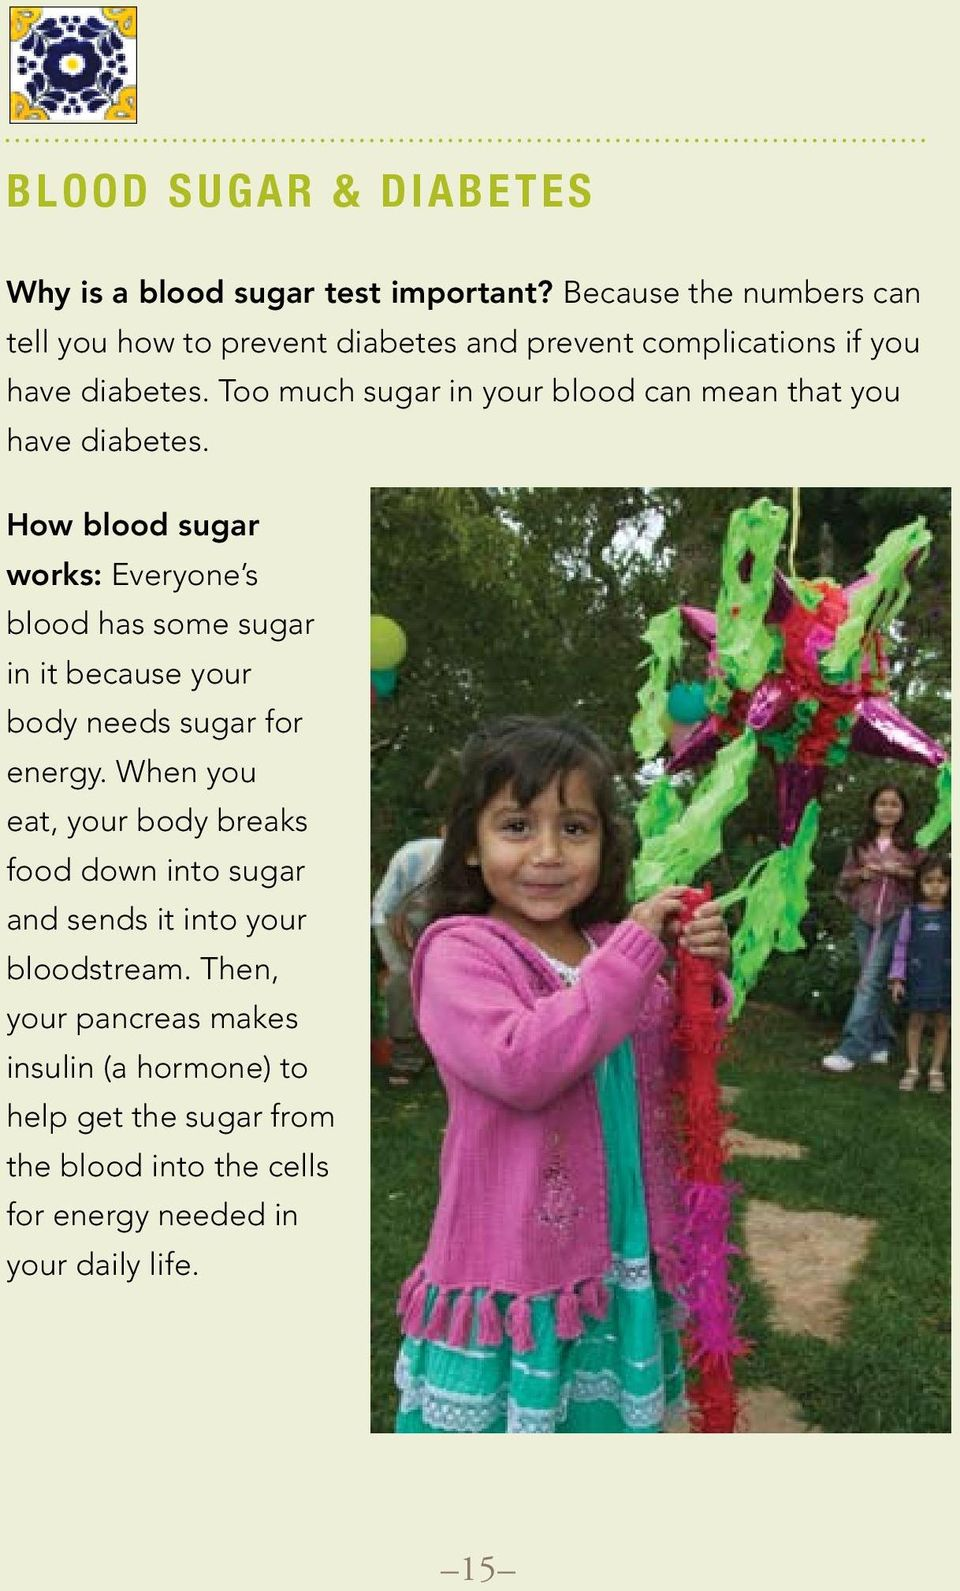 Too much sugar in your blood can mean that you have diabetes.